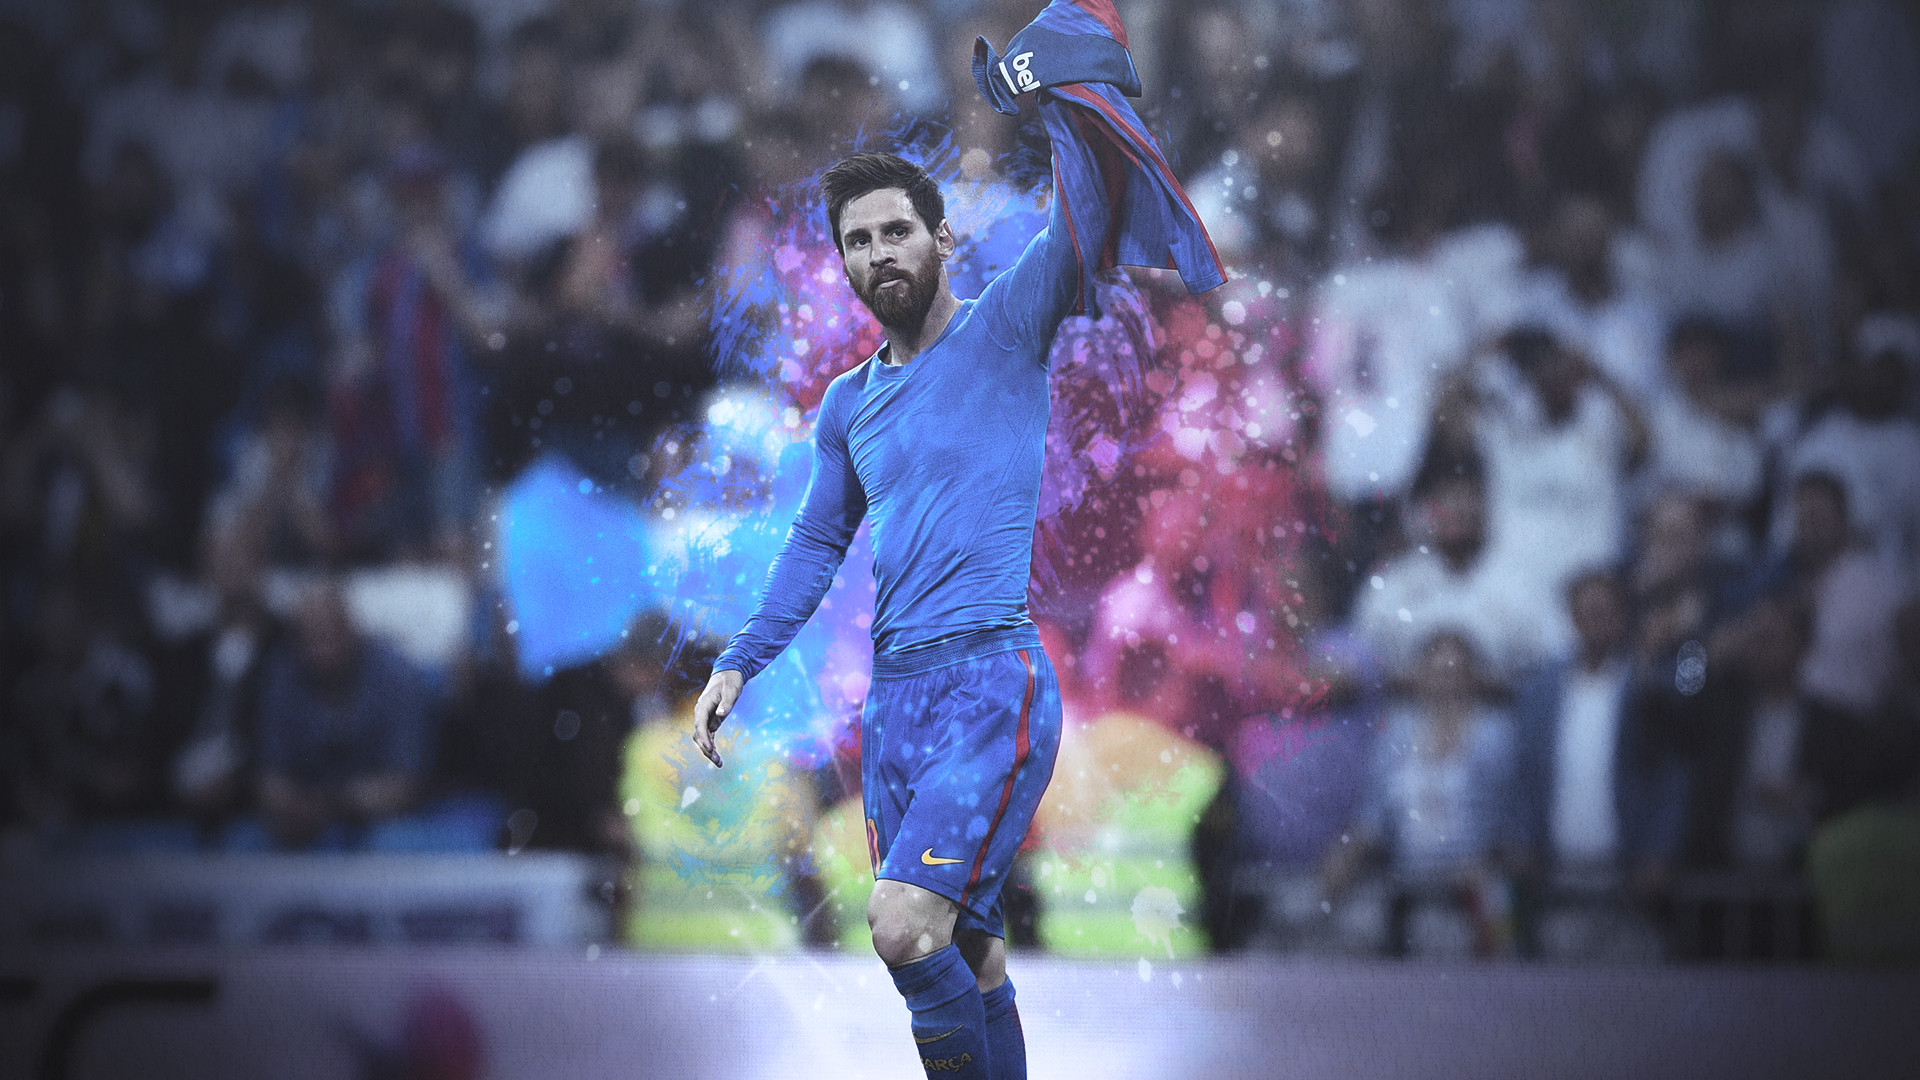 … Lionel Messi HD Background – Iconic Celebration by E-ZAF